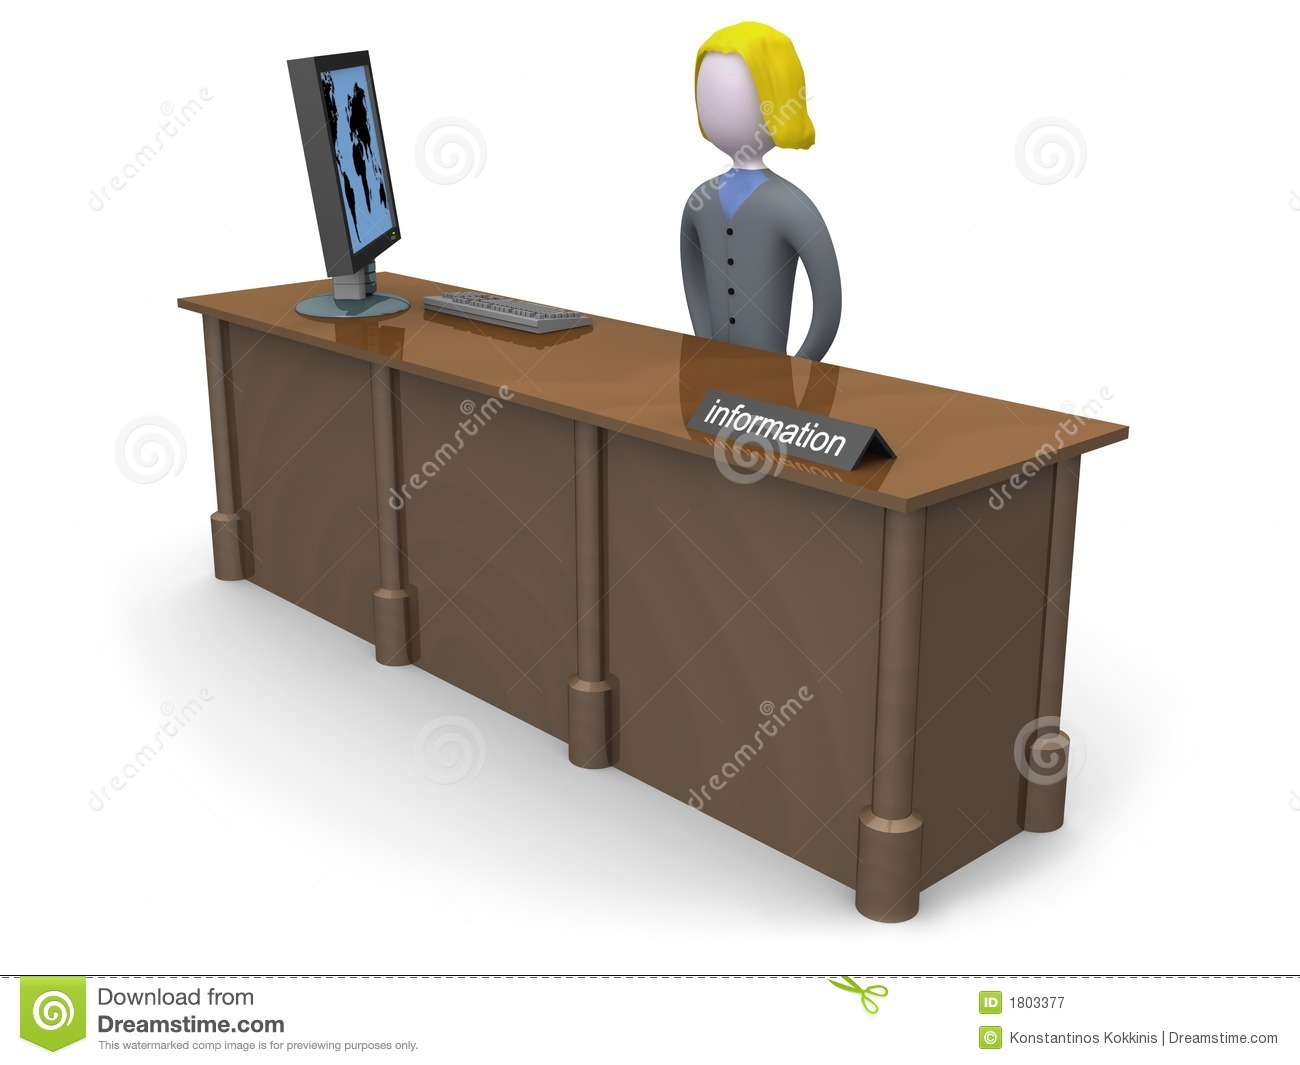 Information Desk Royalty Free Stock Photography - Image: 1803377